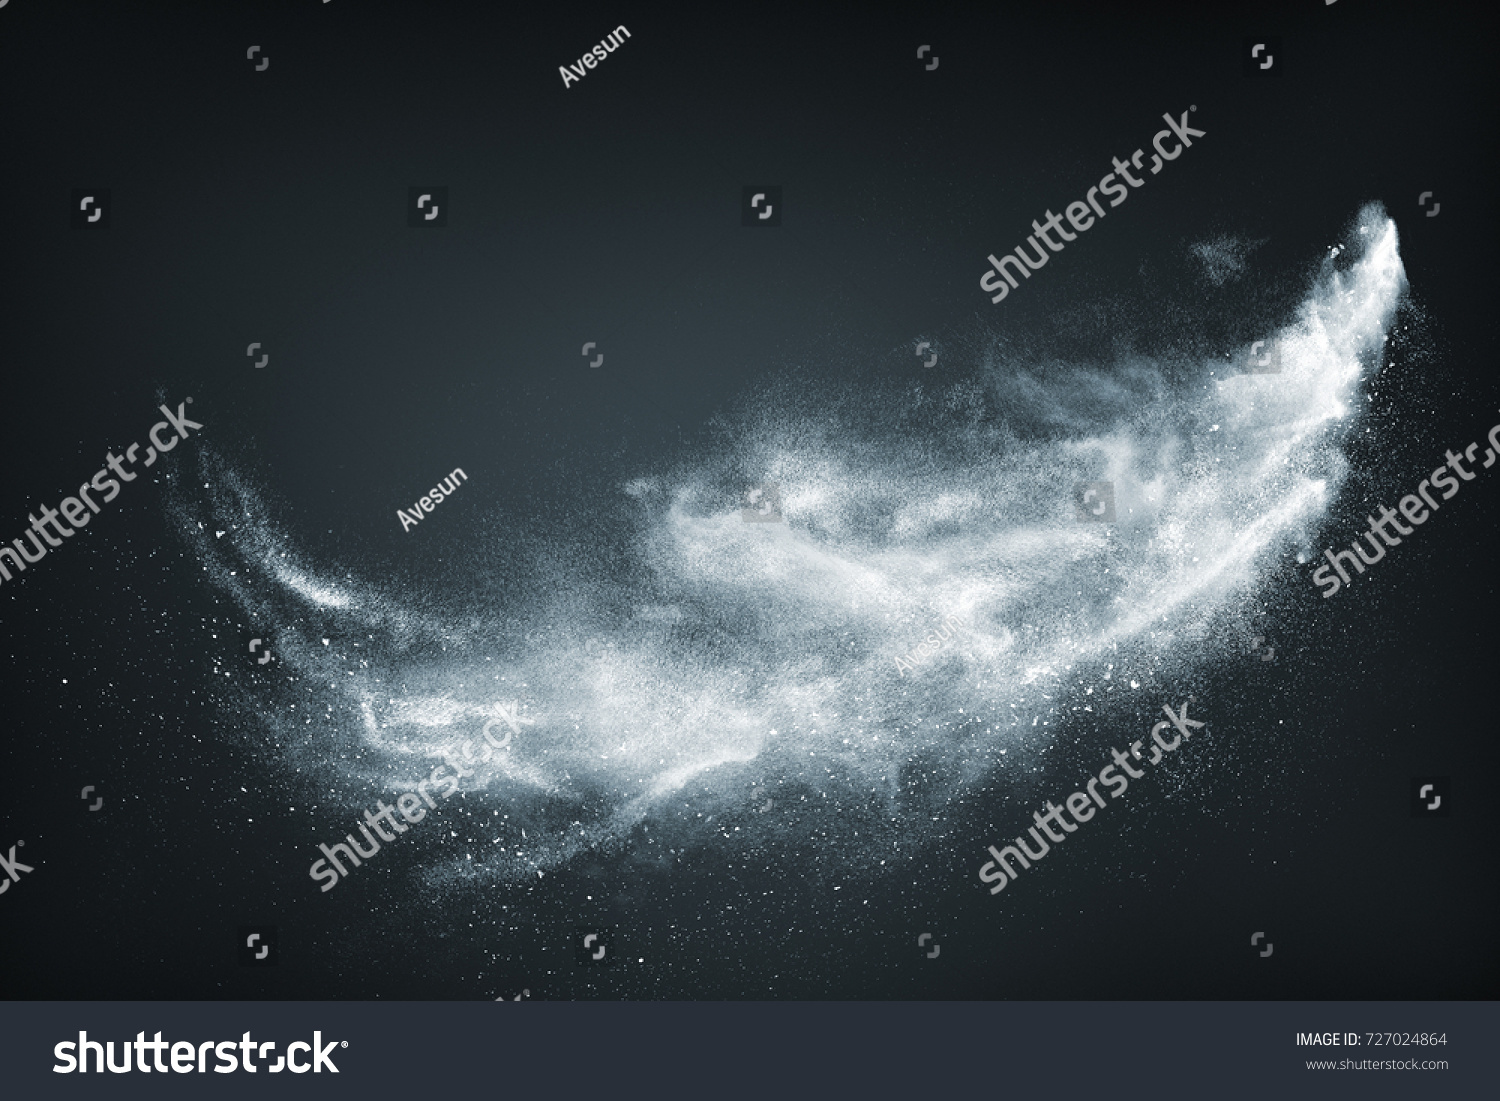 Abstract design of white powder snow cloud explosion on dark background #727024864